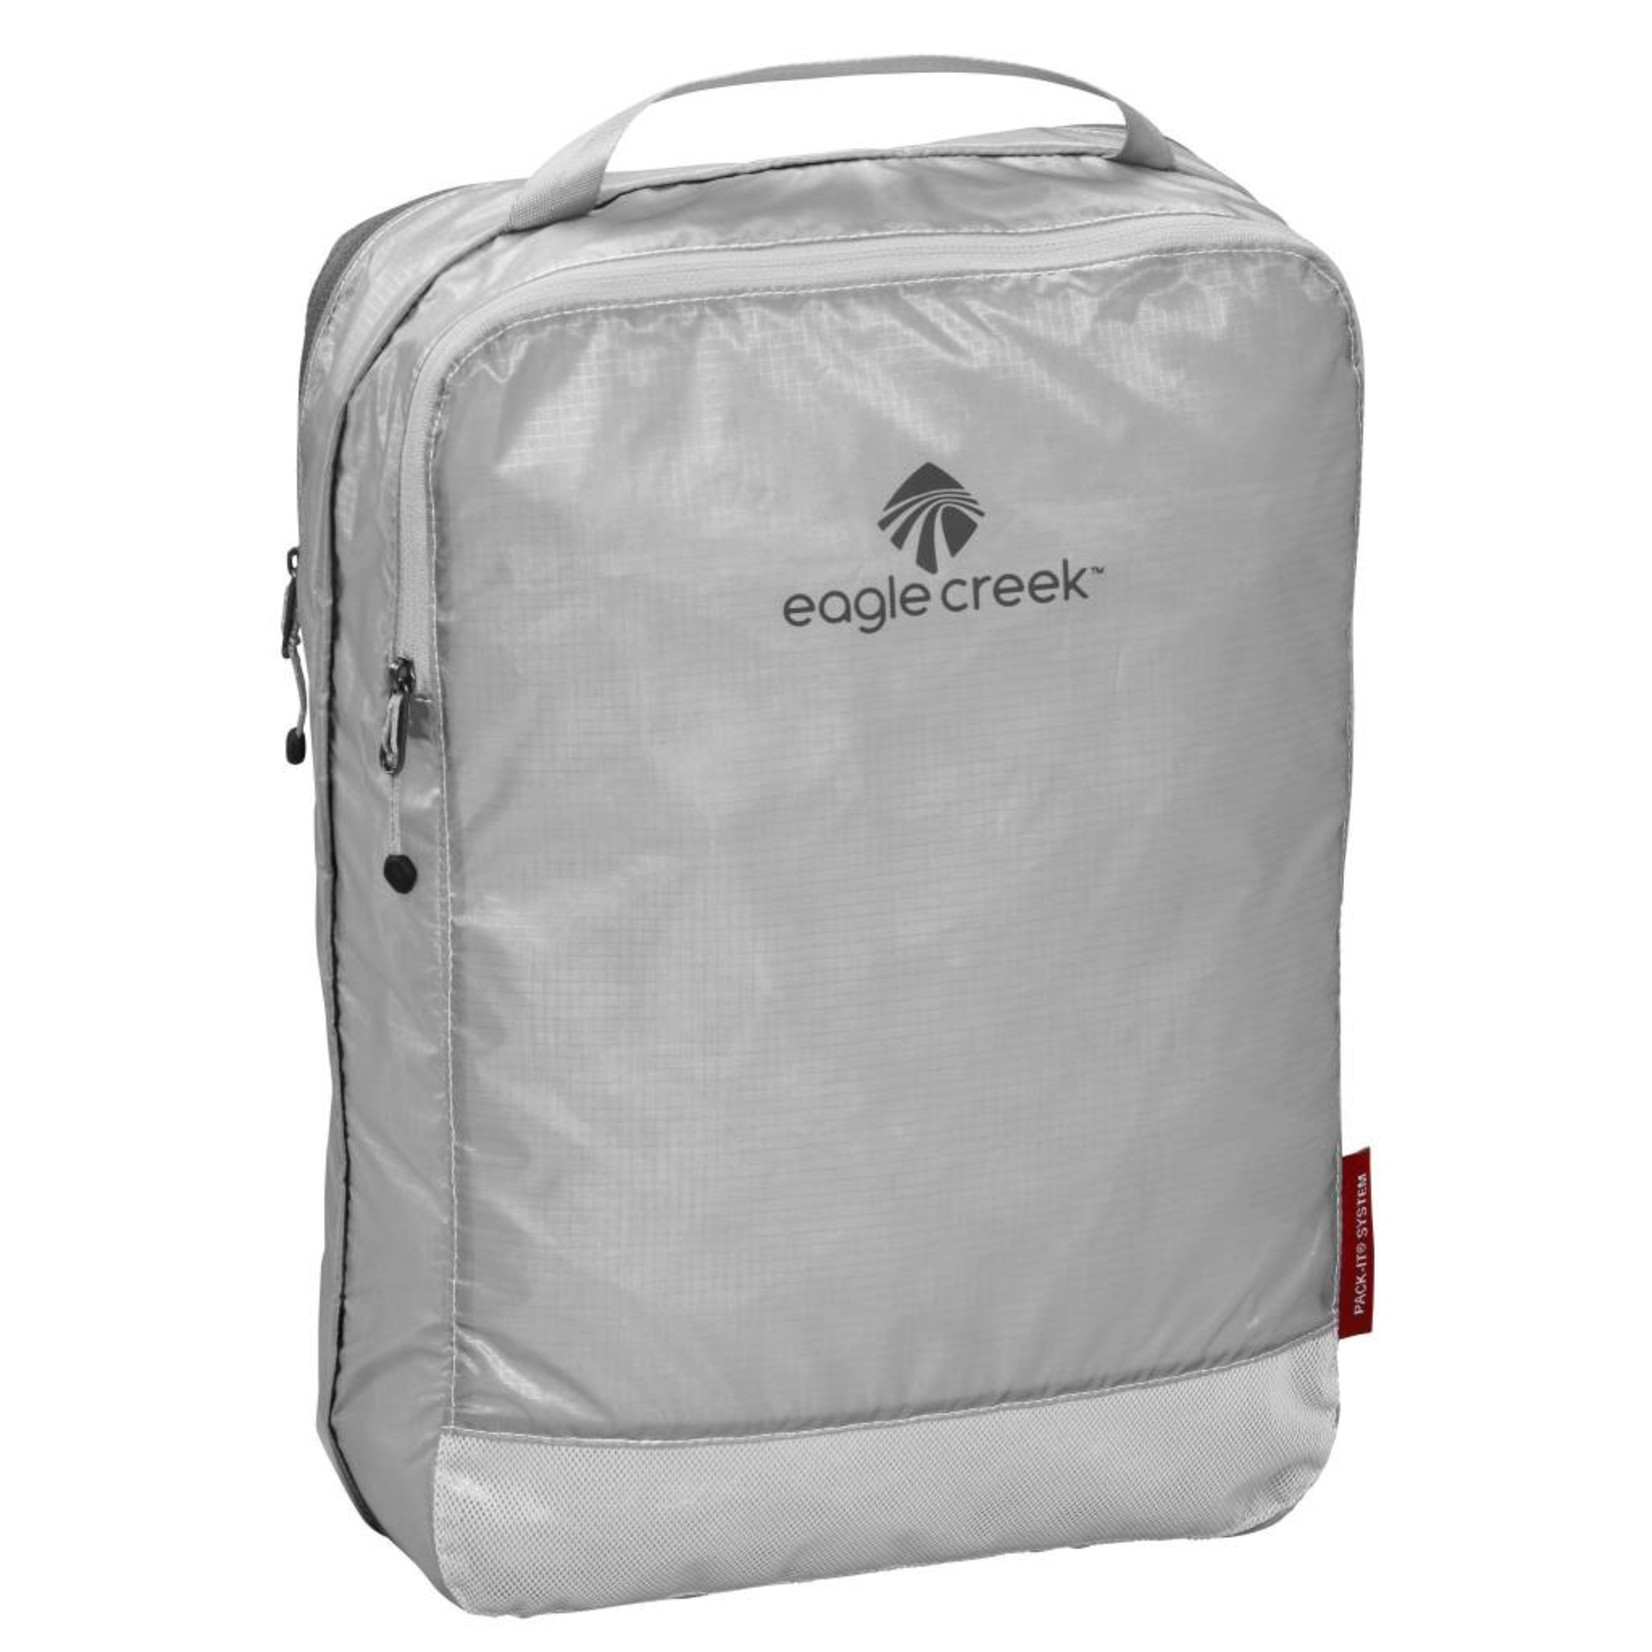 EAGLE CREEK PACK-IT SPECTER CLEAN DIRTY CUBE